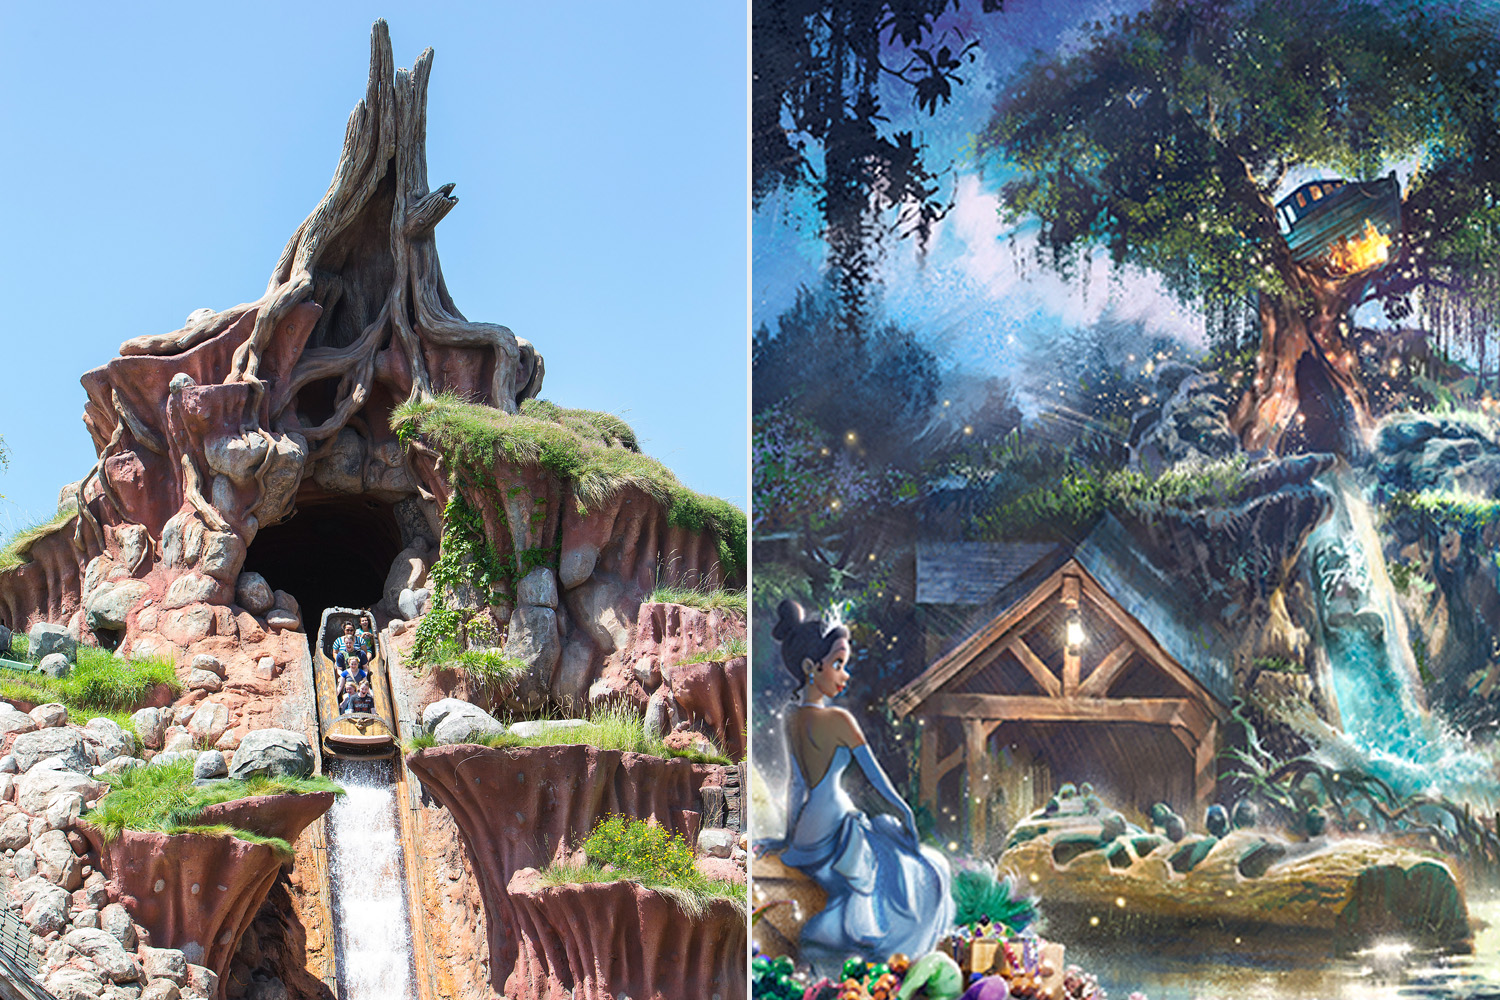 Splash Mountain; Reimagined With Princess and the Frog